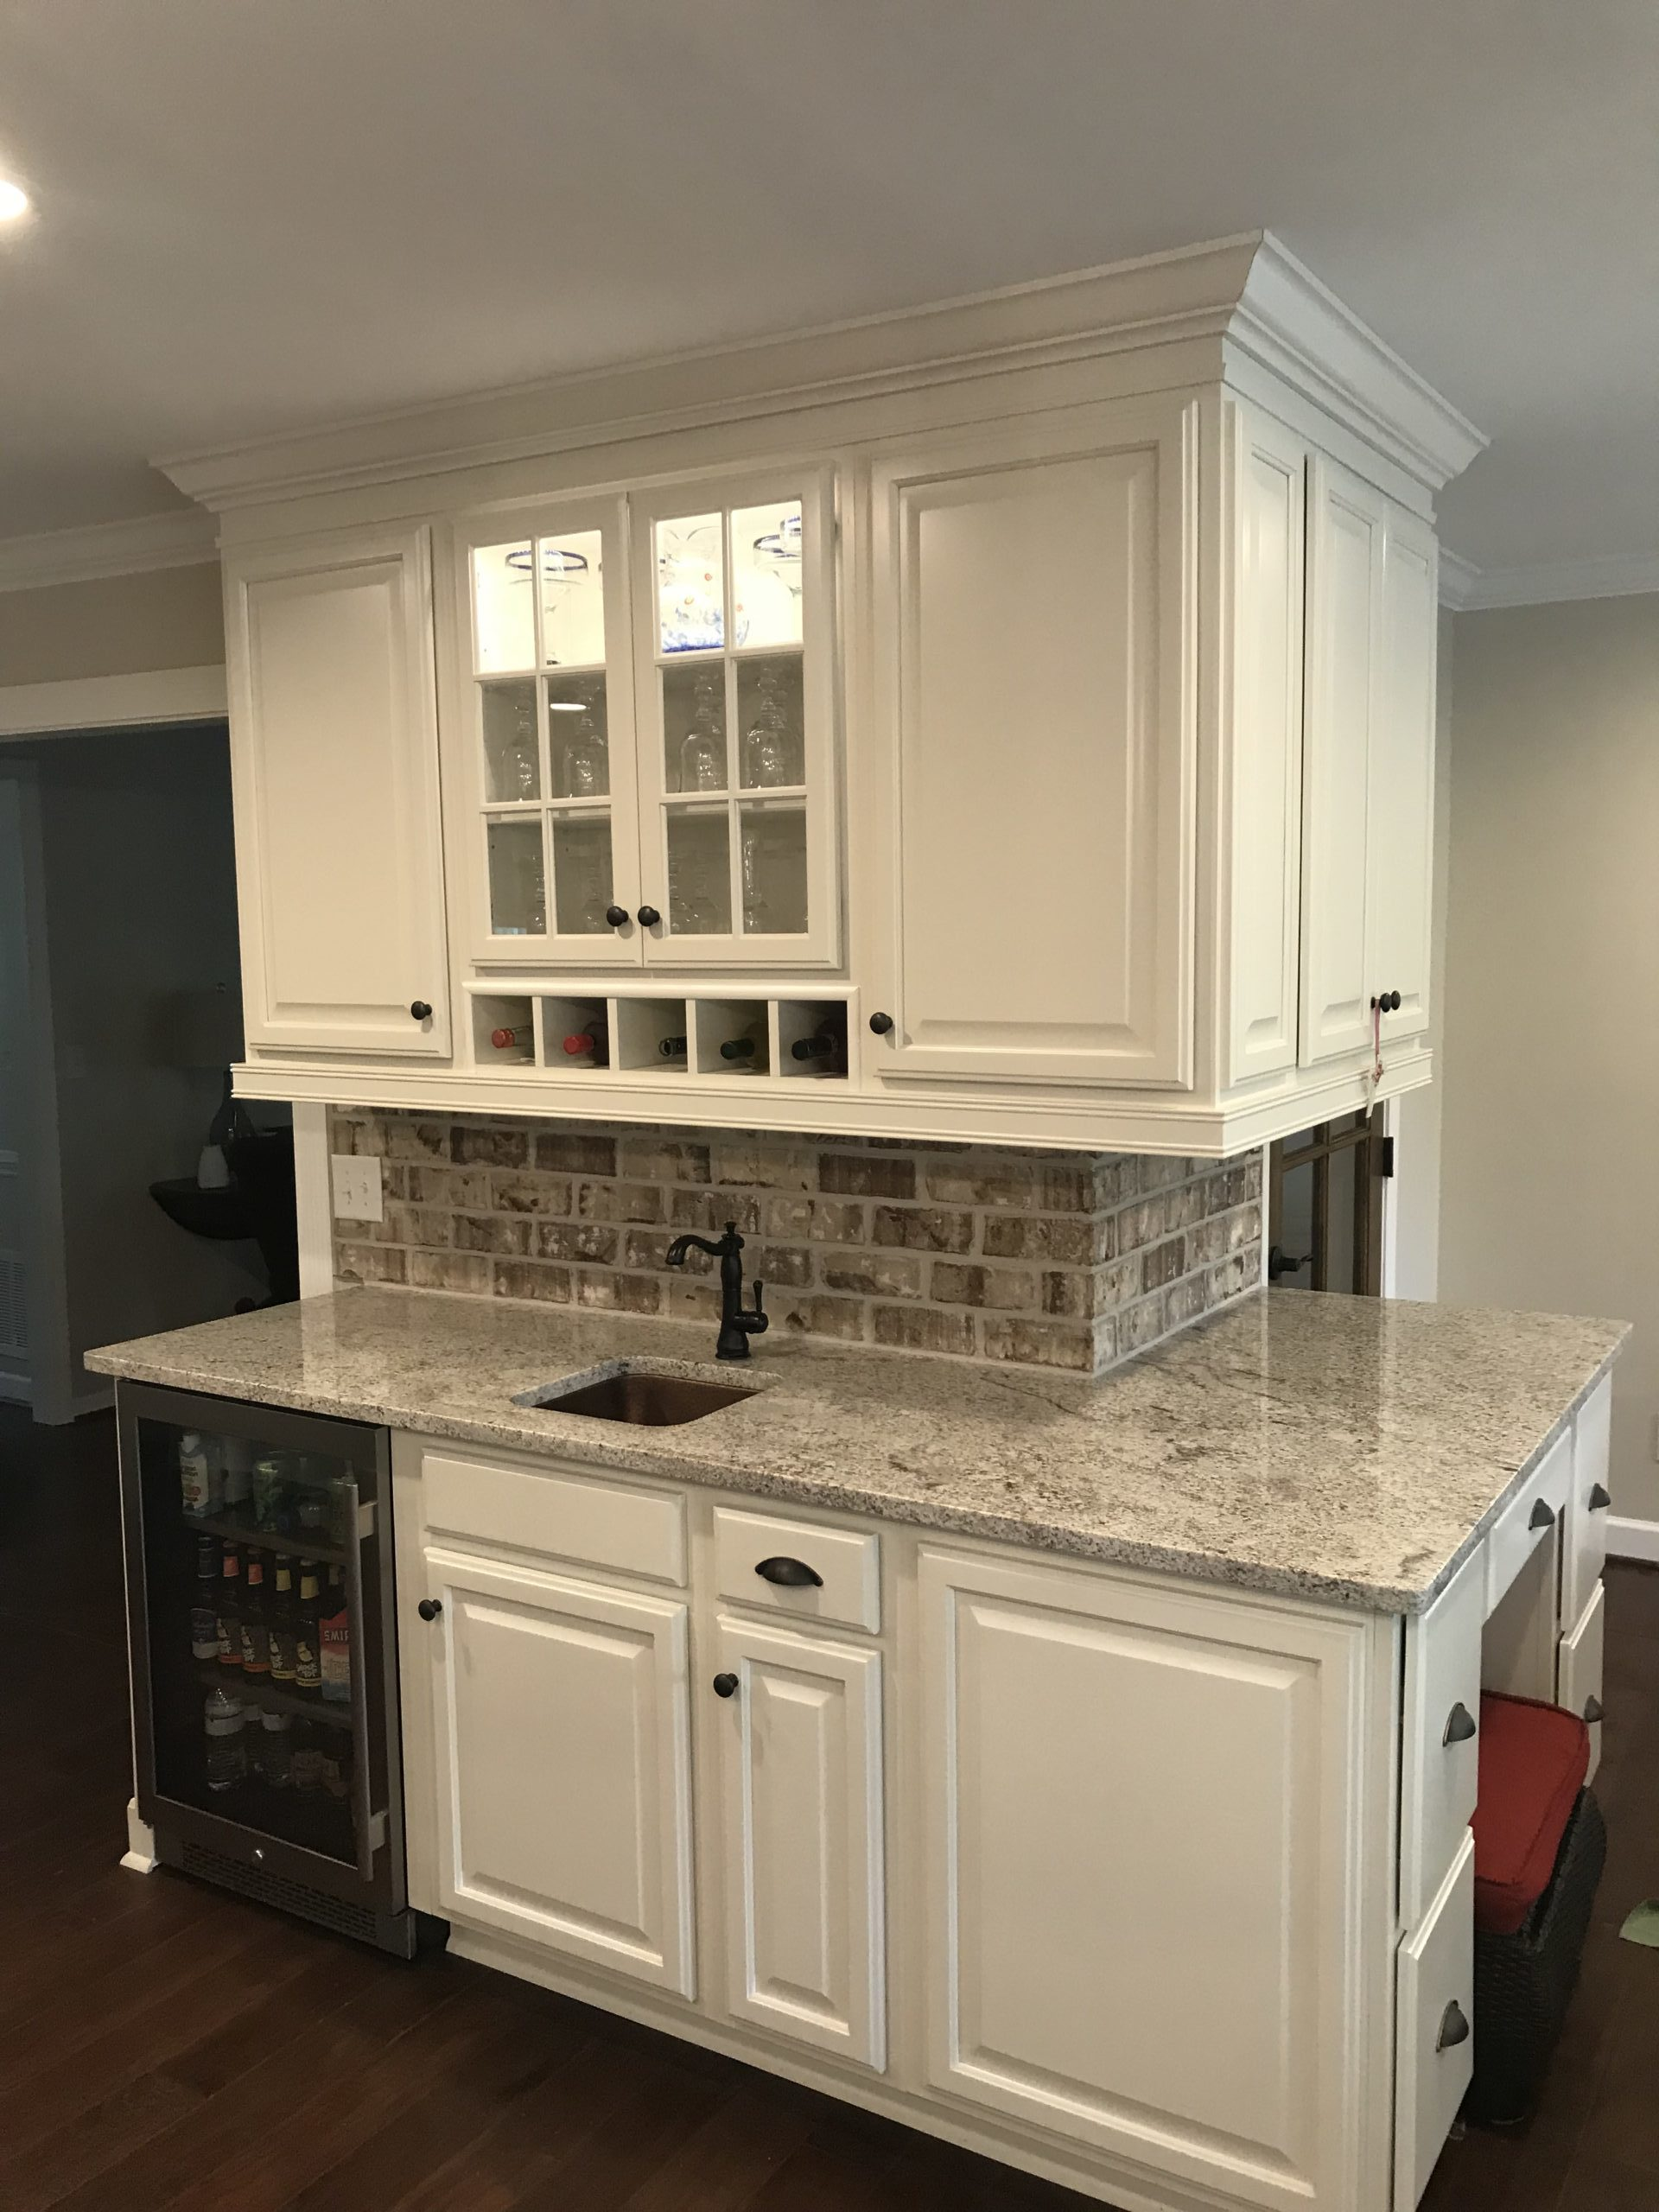 kitchen-remodeling-work-TAG-Builder-104-WW-Kitchen-Remodel-4-scaled-e1586520517651